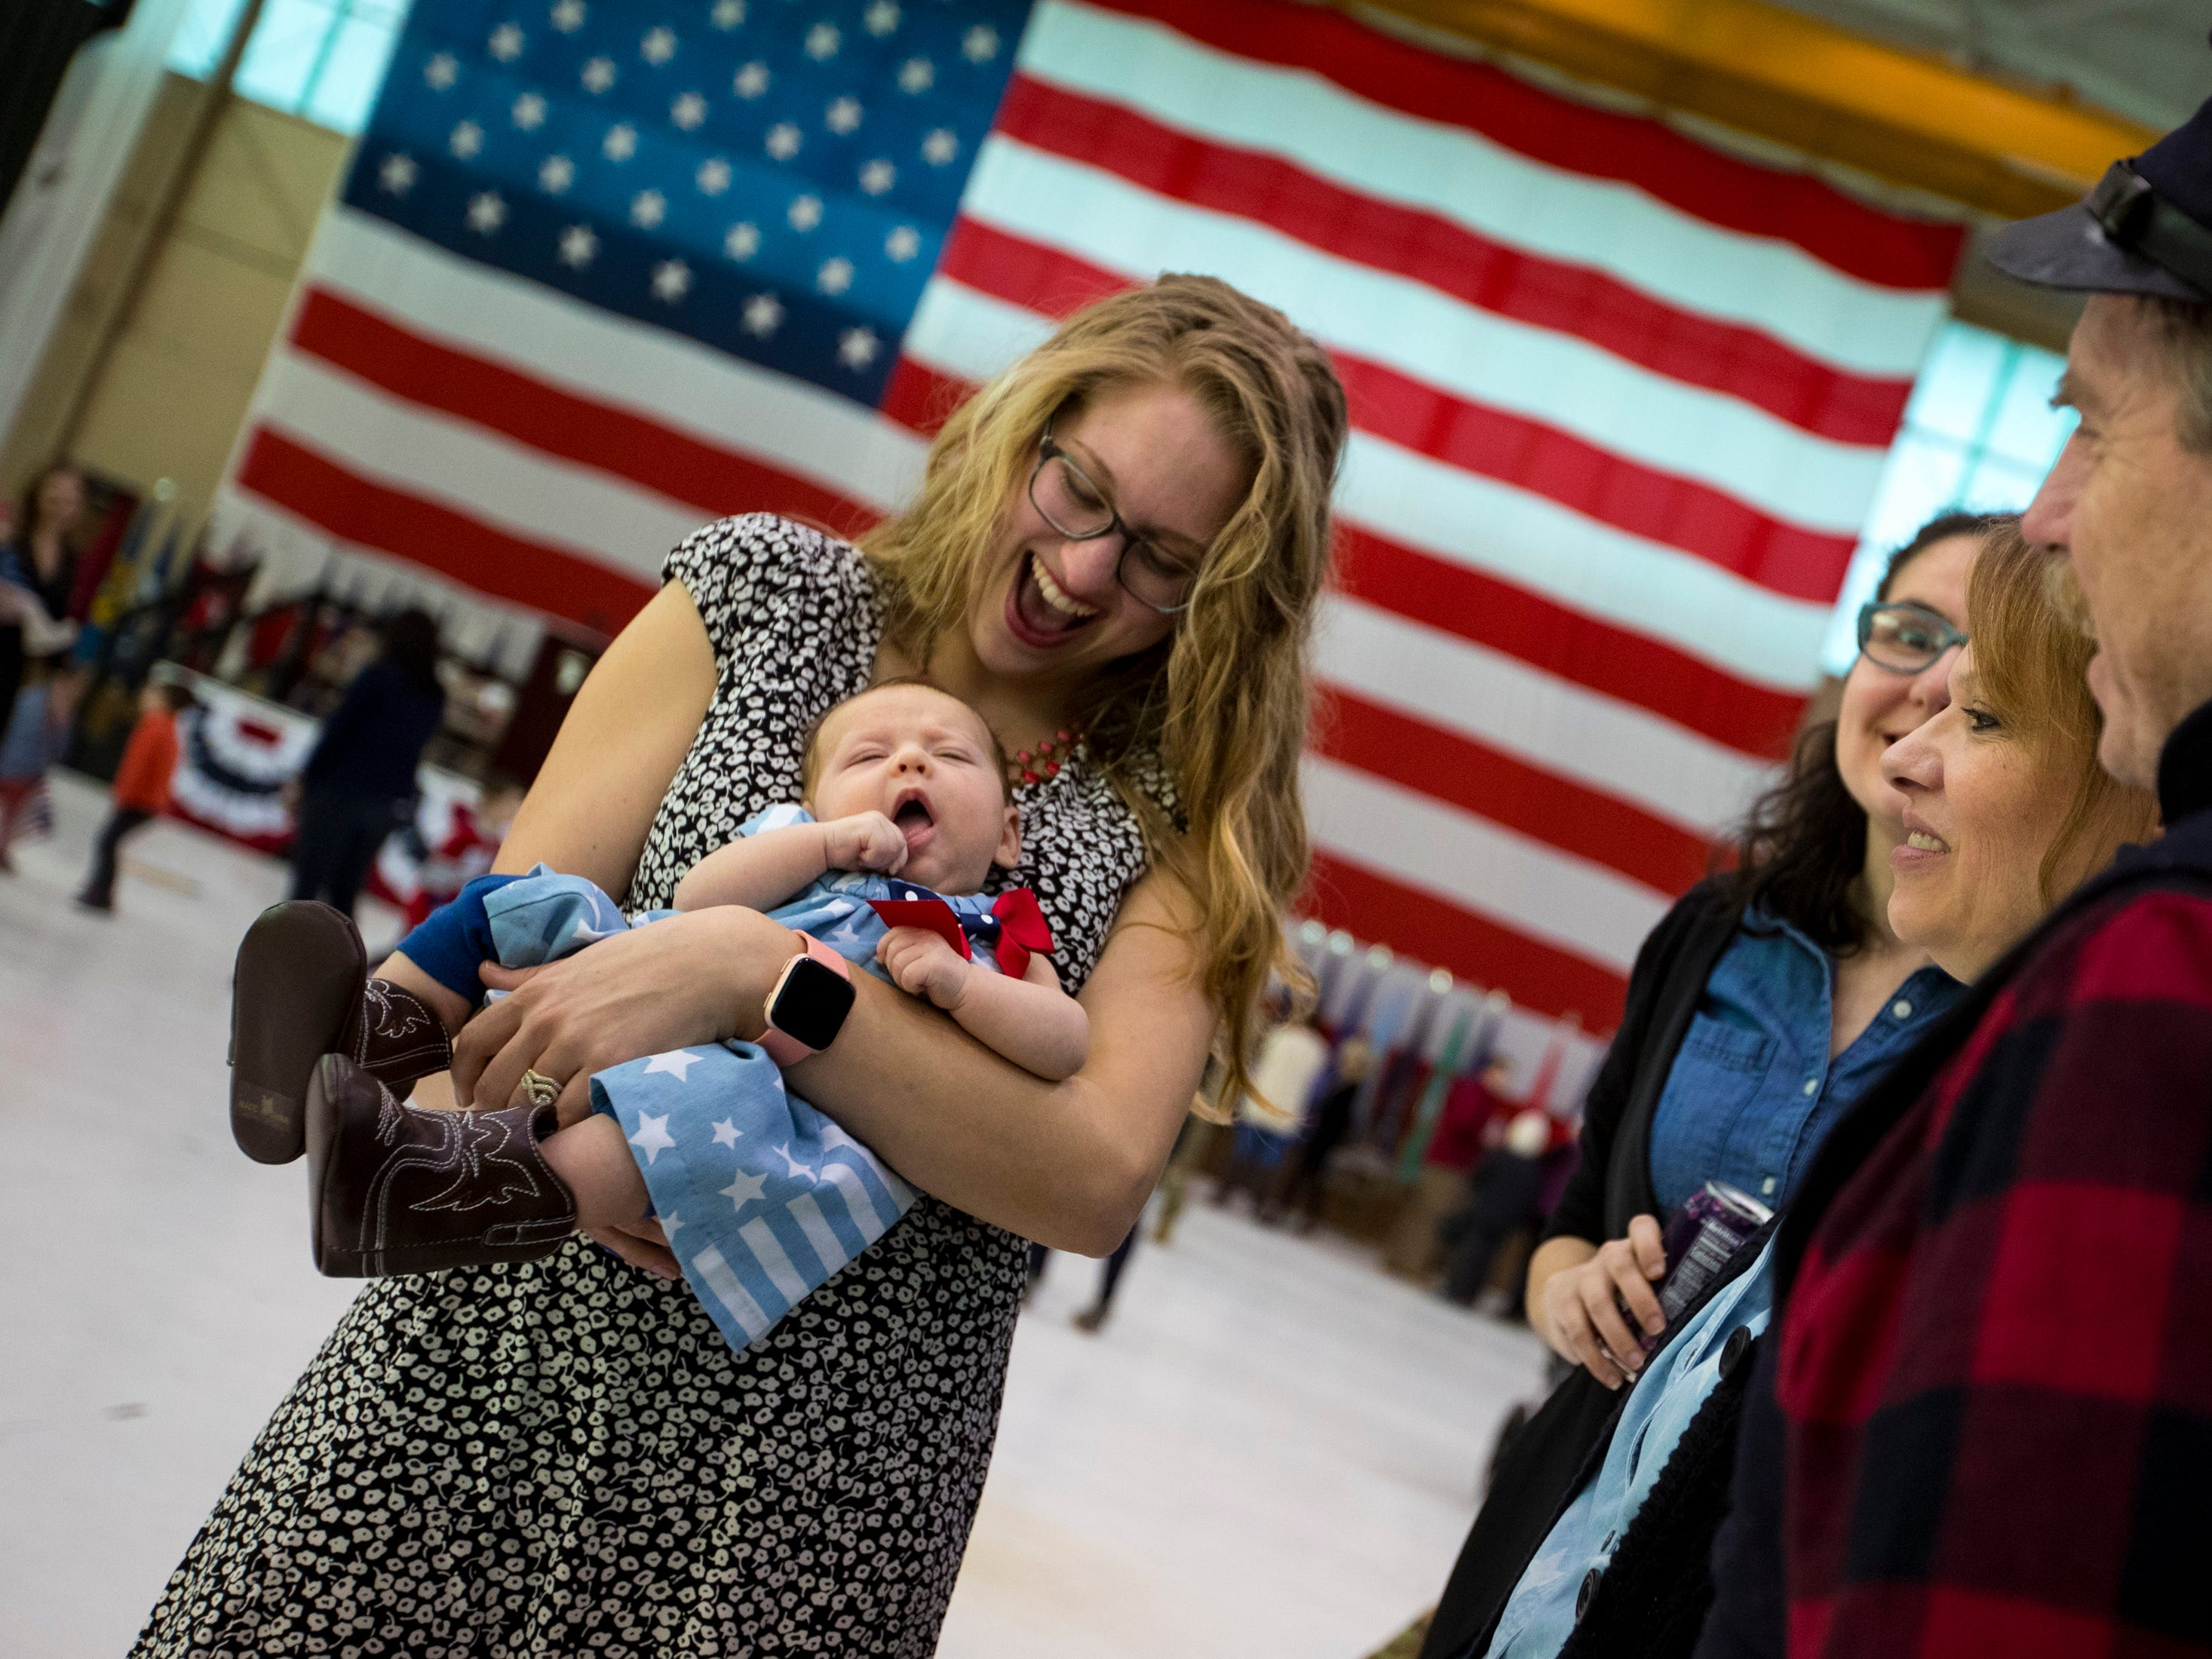 Sarah Paski holds Gianna Paski, 2 months, during a homecoming ceremony for members of the 101st Combat Aviation Brigade and 101st Sustainment Brigade at Fort Campbell in Clarksville on Thursday, Feb. 21, 2019. The ceremony was the first time Gianna Paski would meet her father, Staff Sgt. R.J. Paski. The soldiers were returning from a nine-month deployment to Afghanistan.